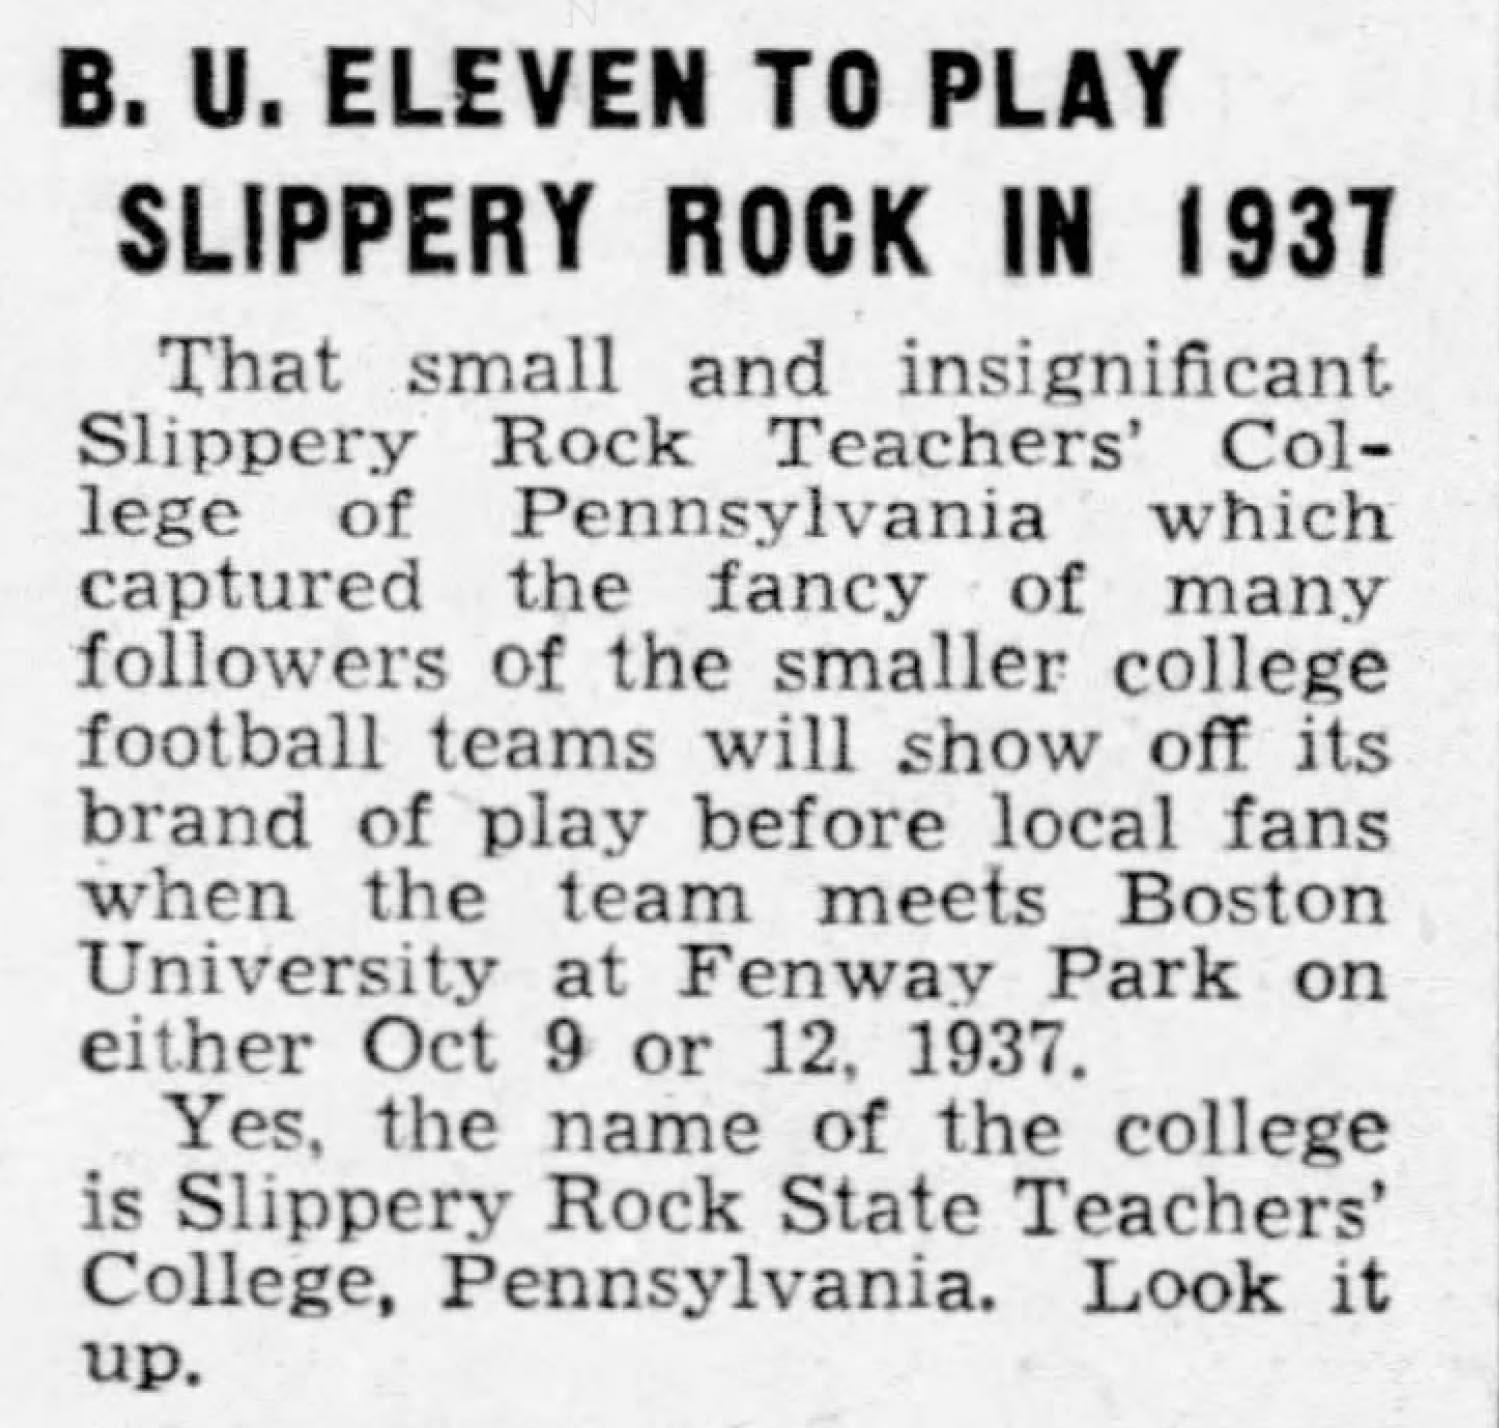 Slippery Rock played at Fenway Park against Boston University in 1937.